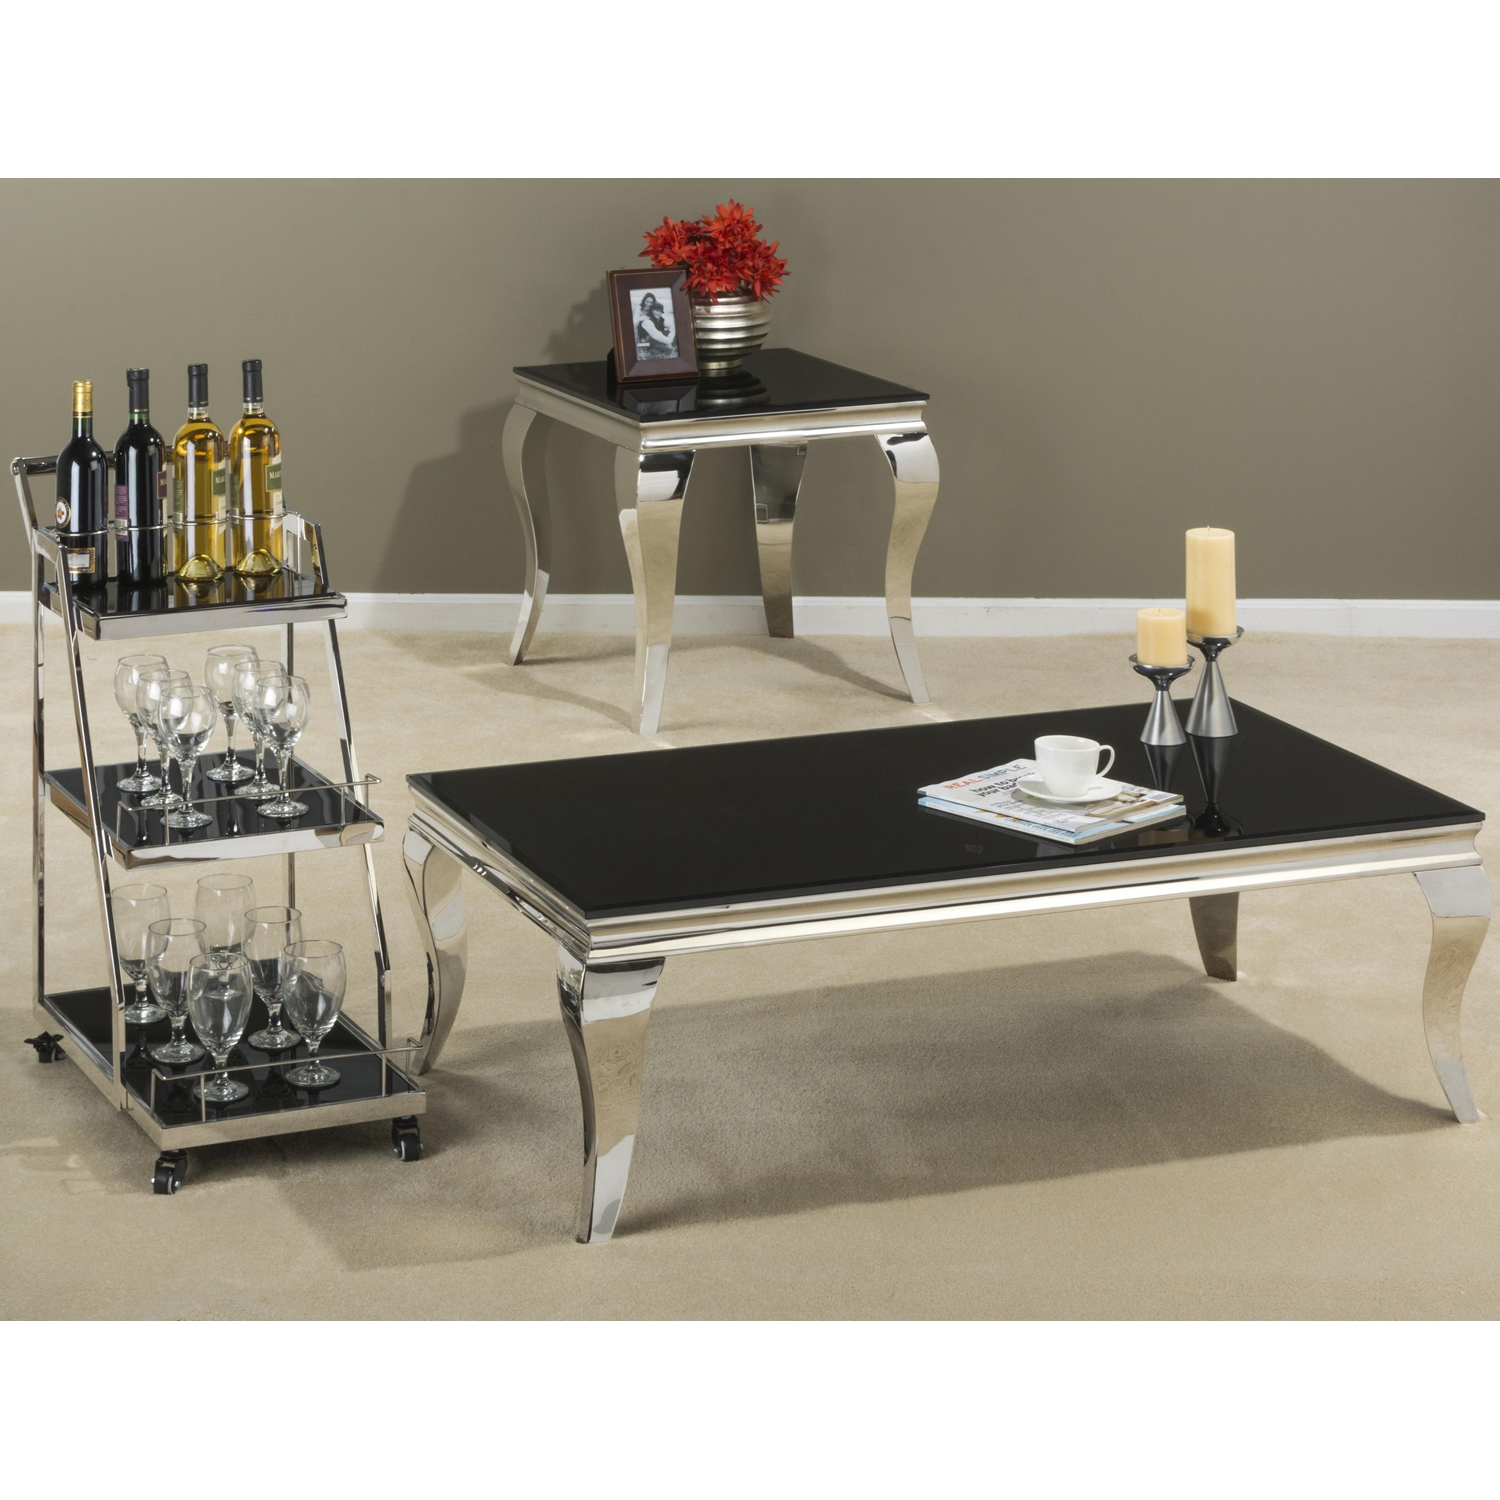 Tuxedo End Table - Stainless Steel and Black - JOFR-531-3